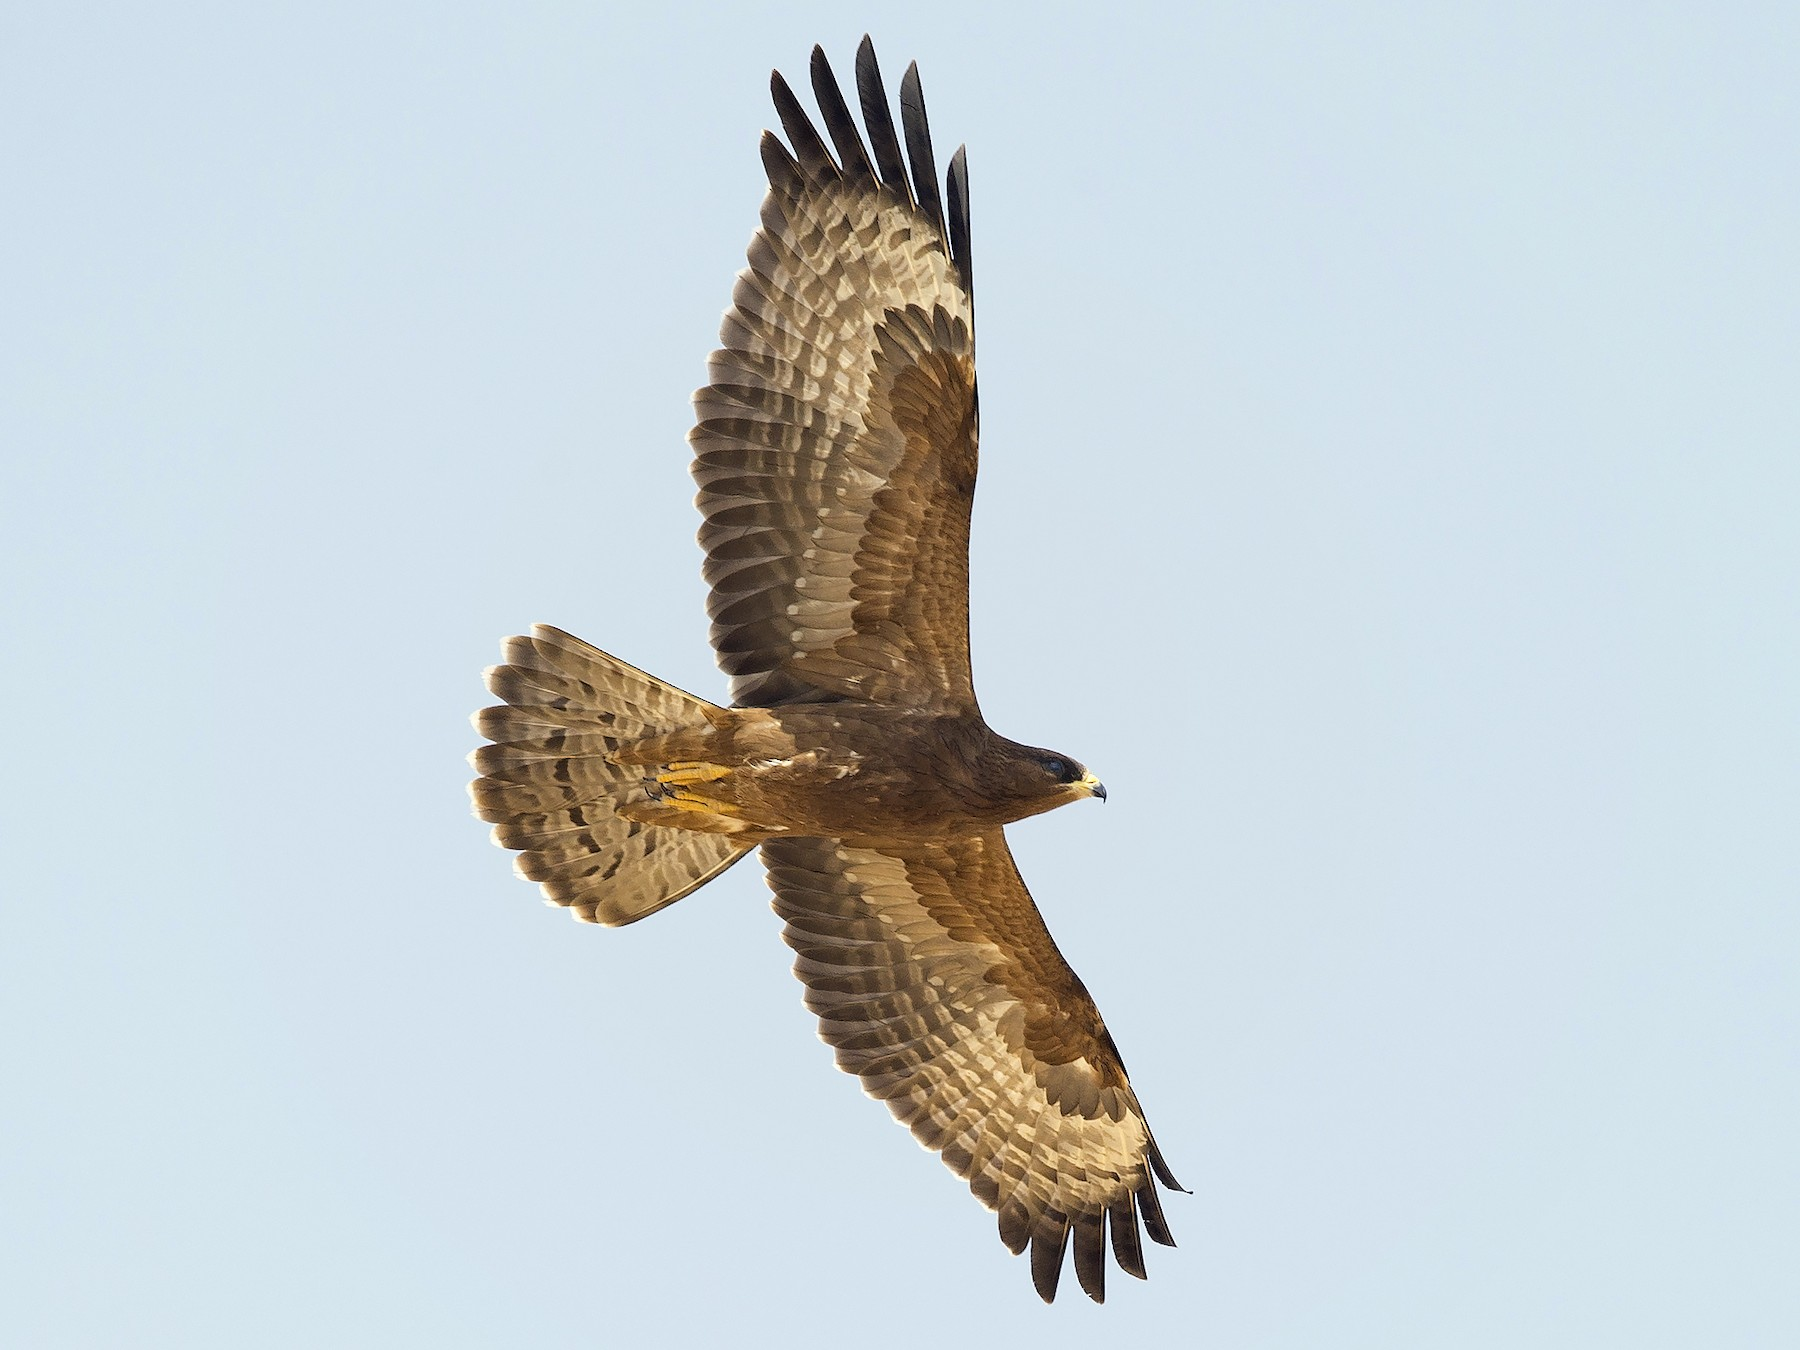 Oriental Honey-buzzard - Omar alshaheen